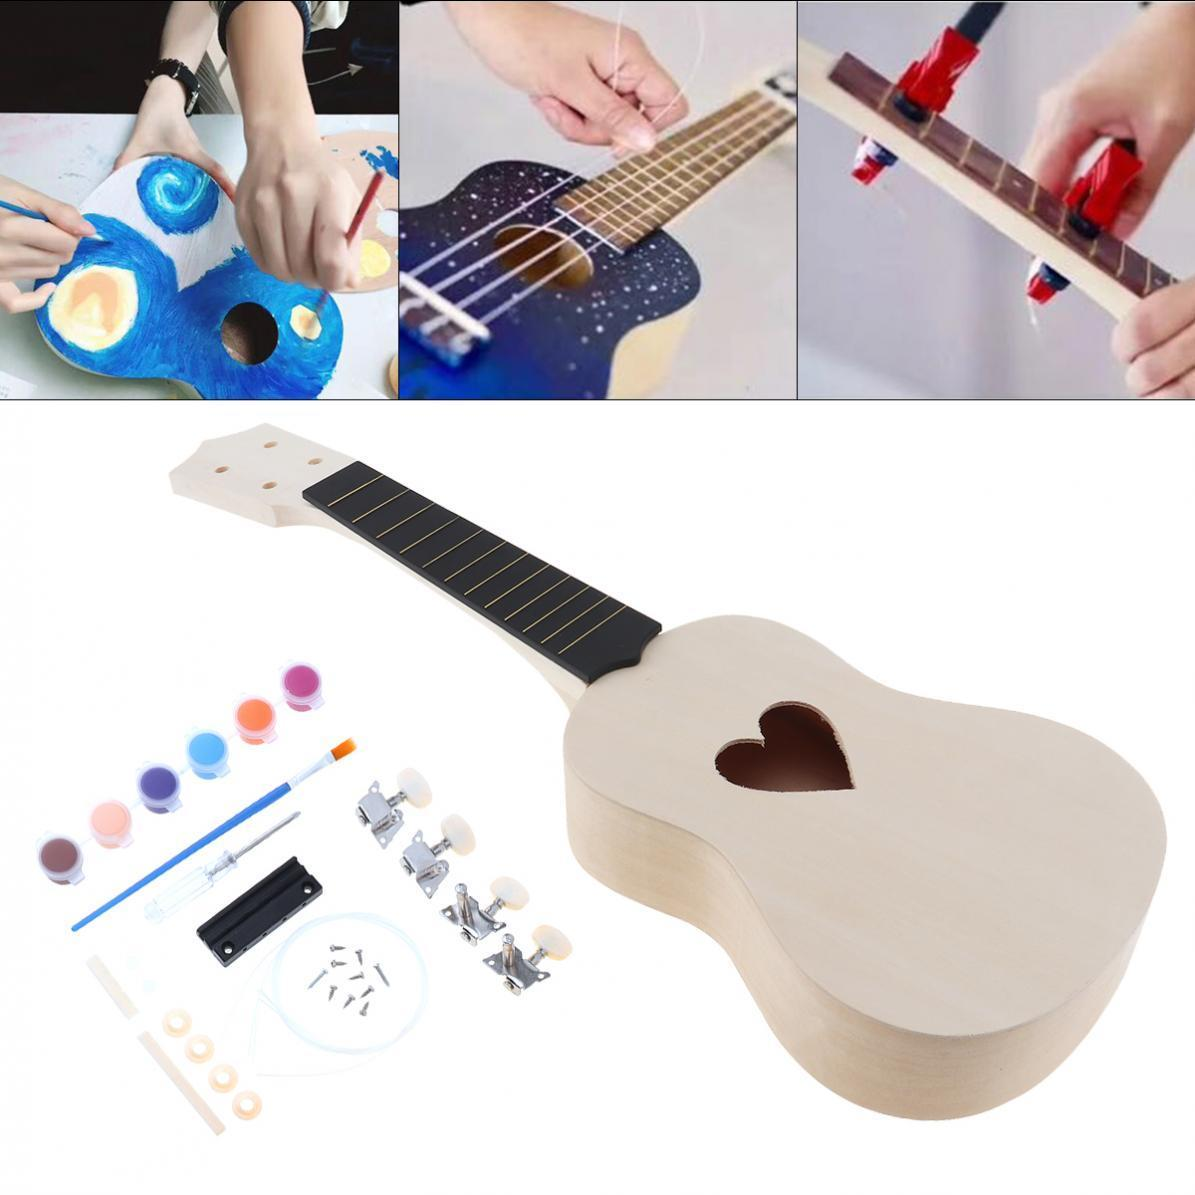 DIY Handmade Ukelele Kit *SAVE 65%!*